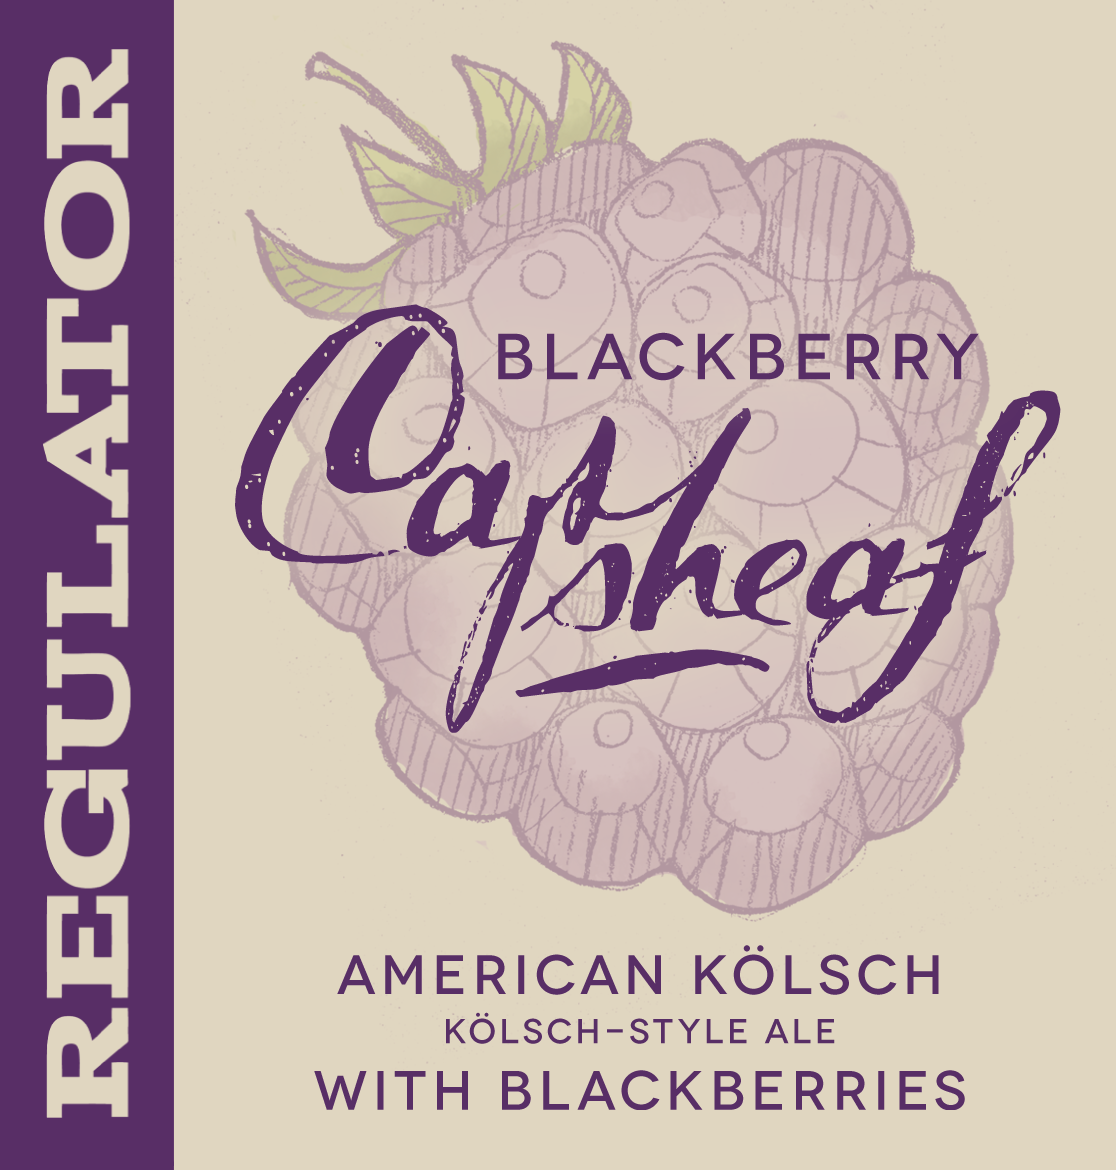 Blackberry Capsheaf Kölsch